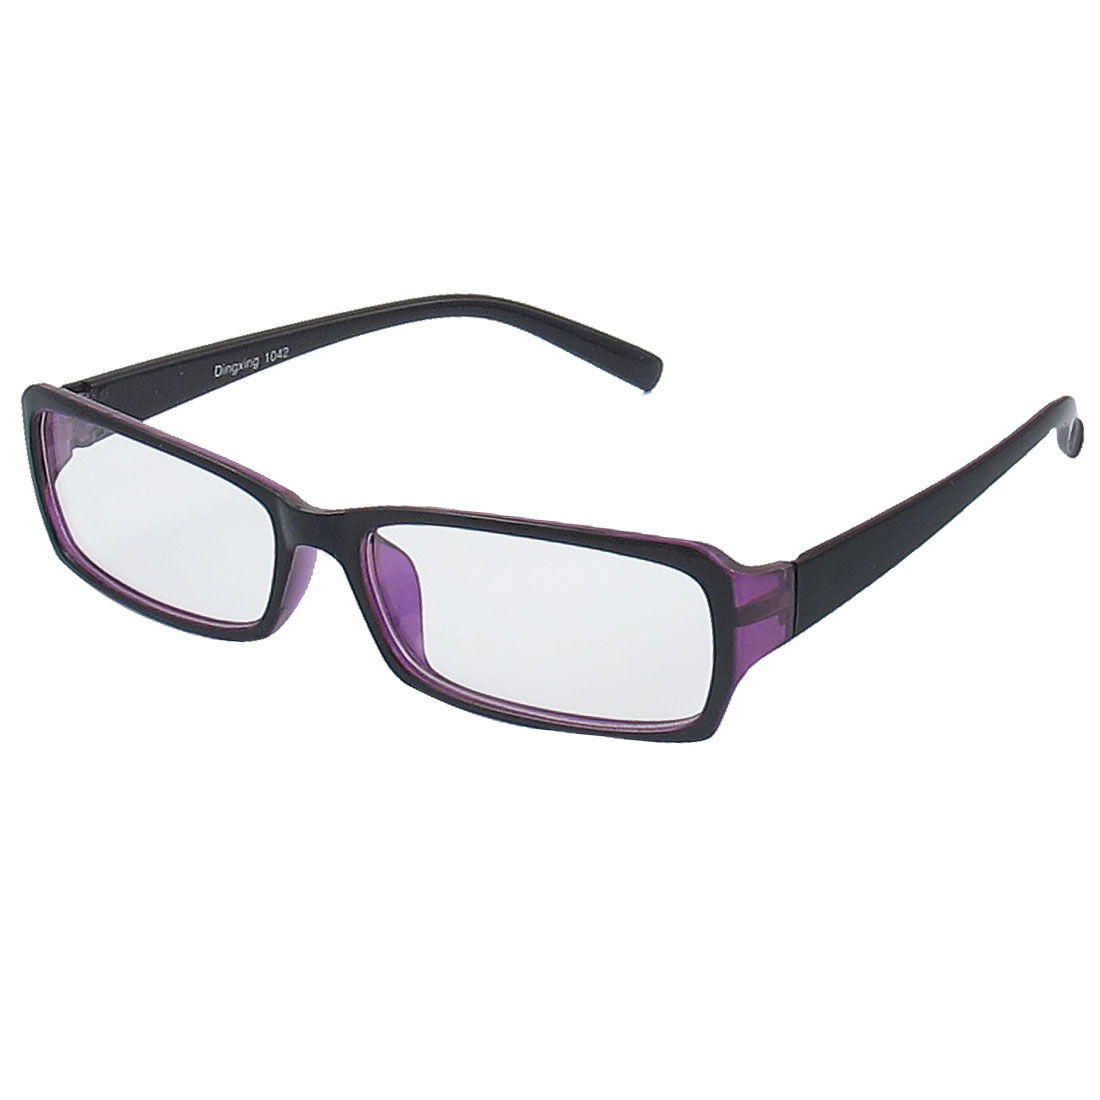 Lady Full Rim Clear Lens Plain Glasses Eyeglass Eyewear Black Purple